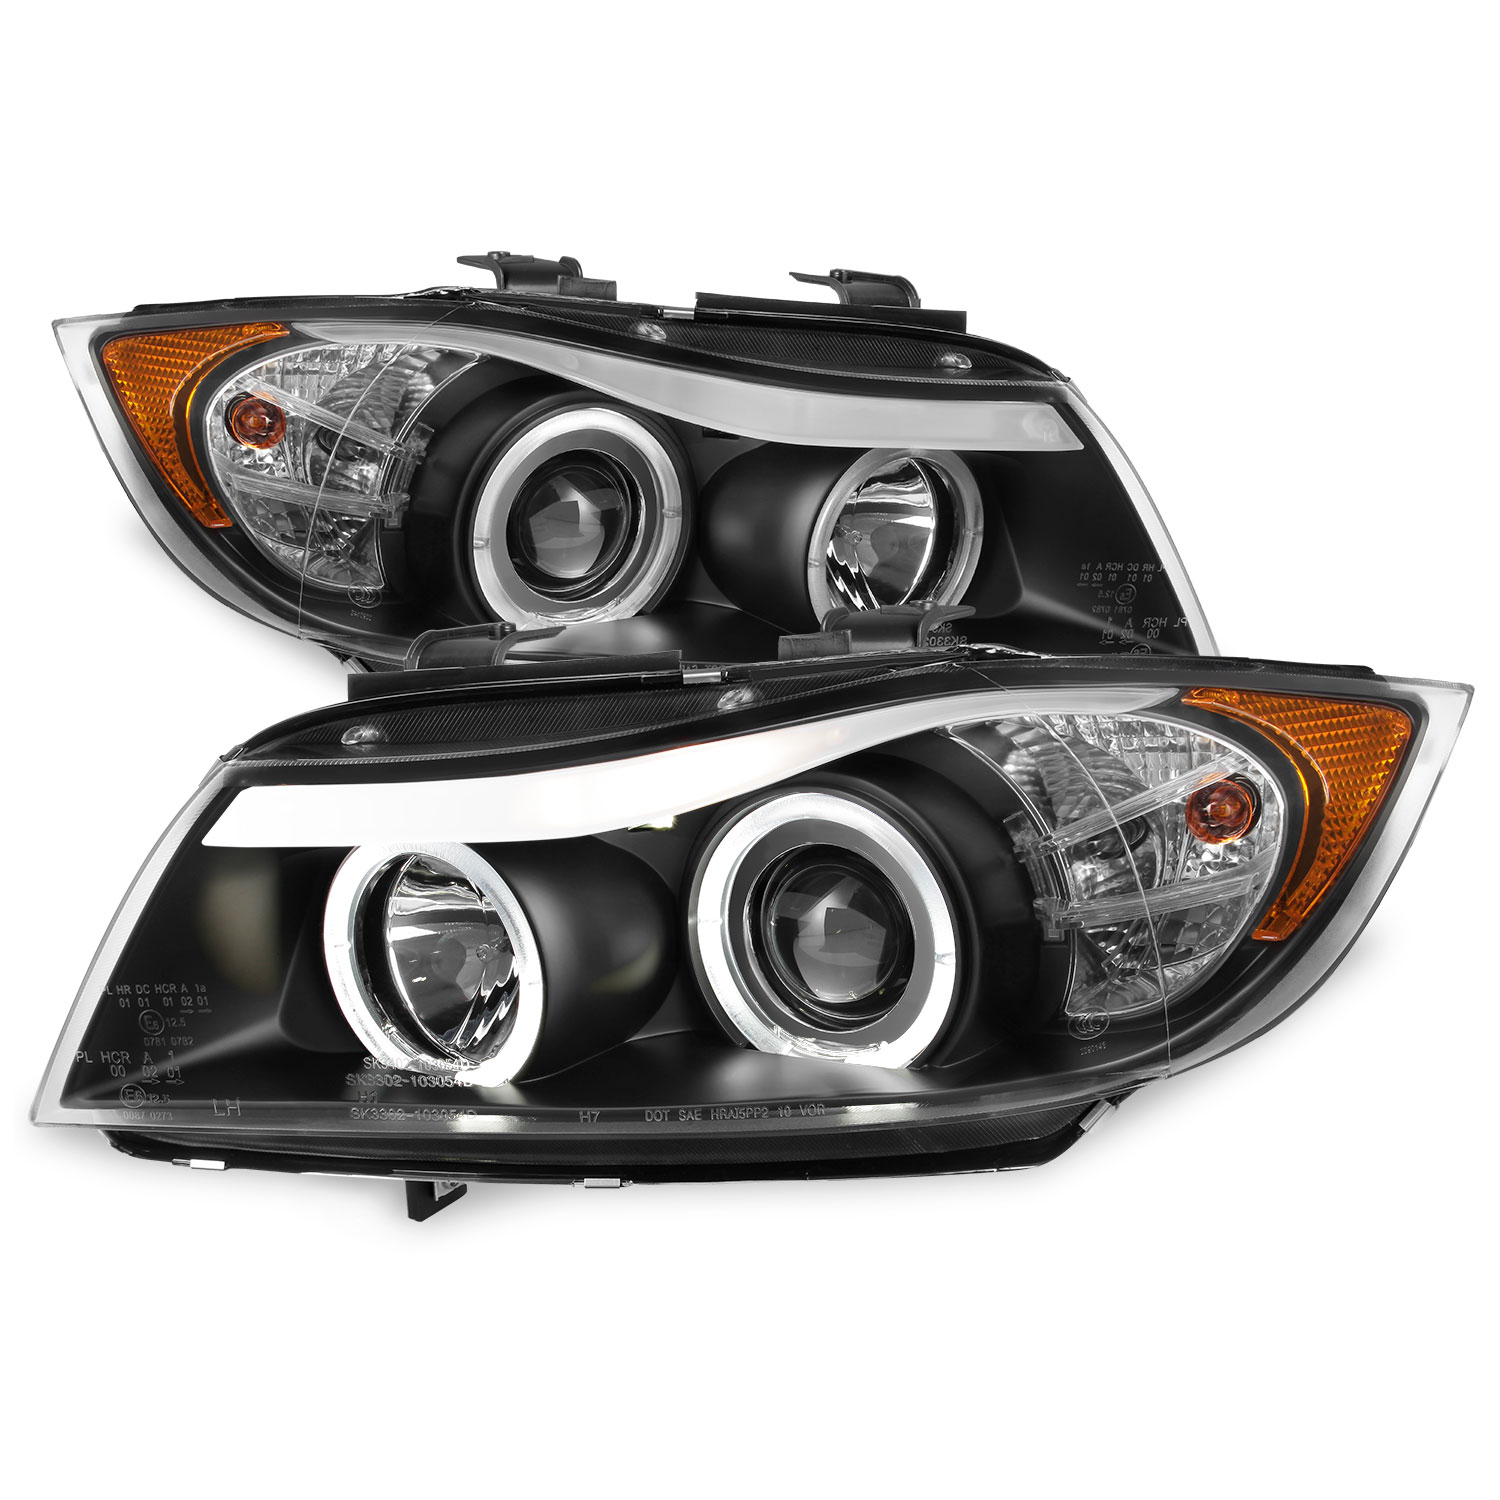 1992 1998 Bmw E36 318i 325i Dual Halo Rim Projector Headlights Chrome Clear Rainbowlands Lk